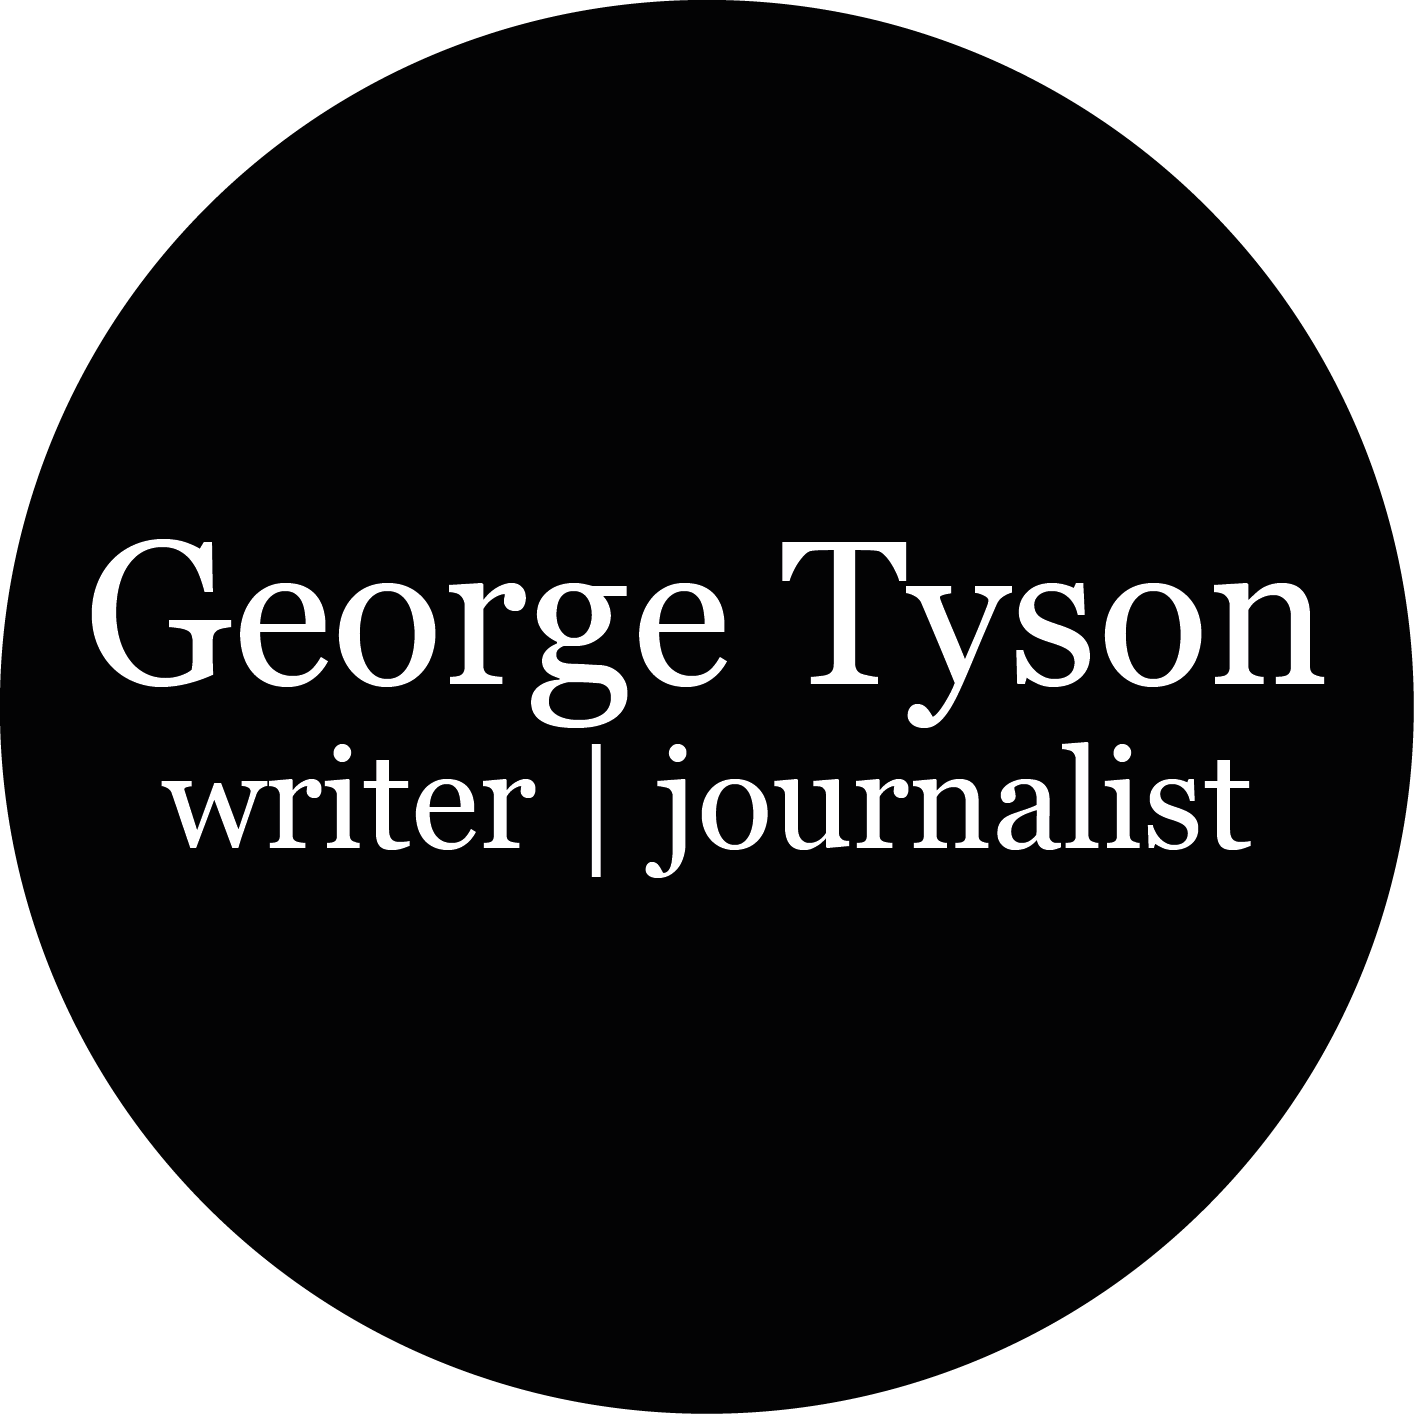 George Tyson | Writer & Journalist